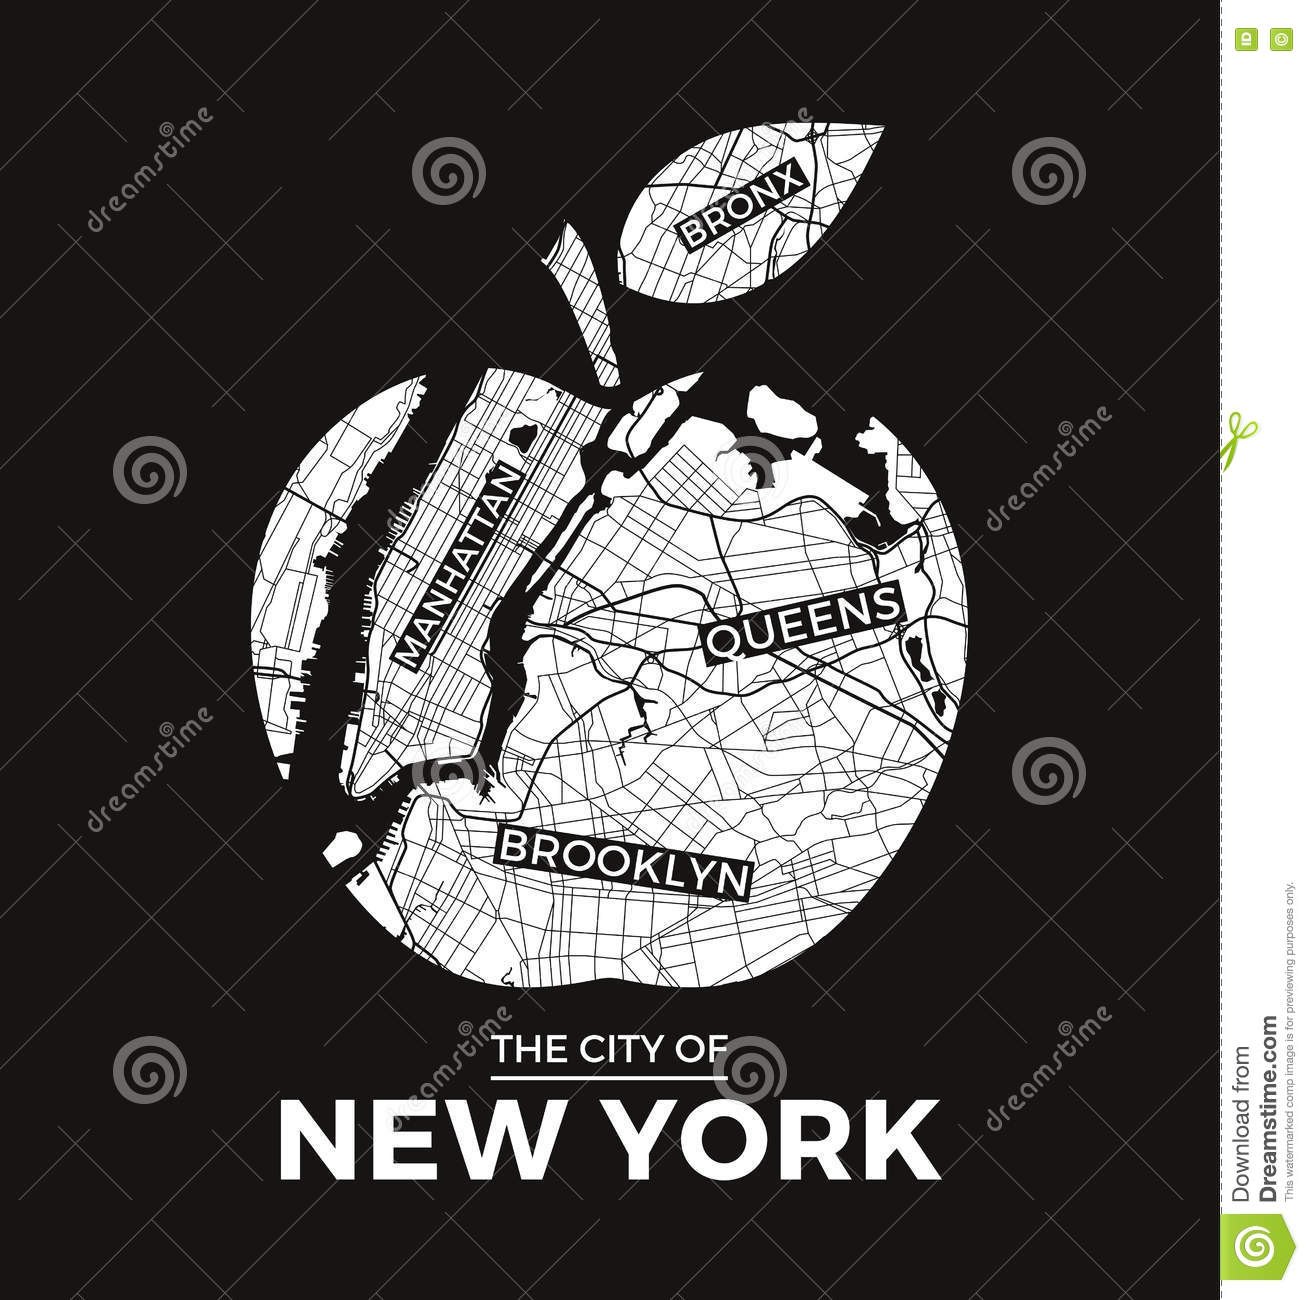 New York Big Apple T Shirt Graphic Design With City Map